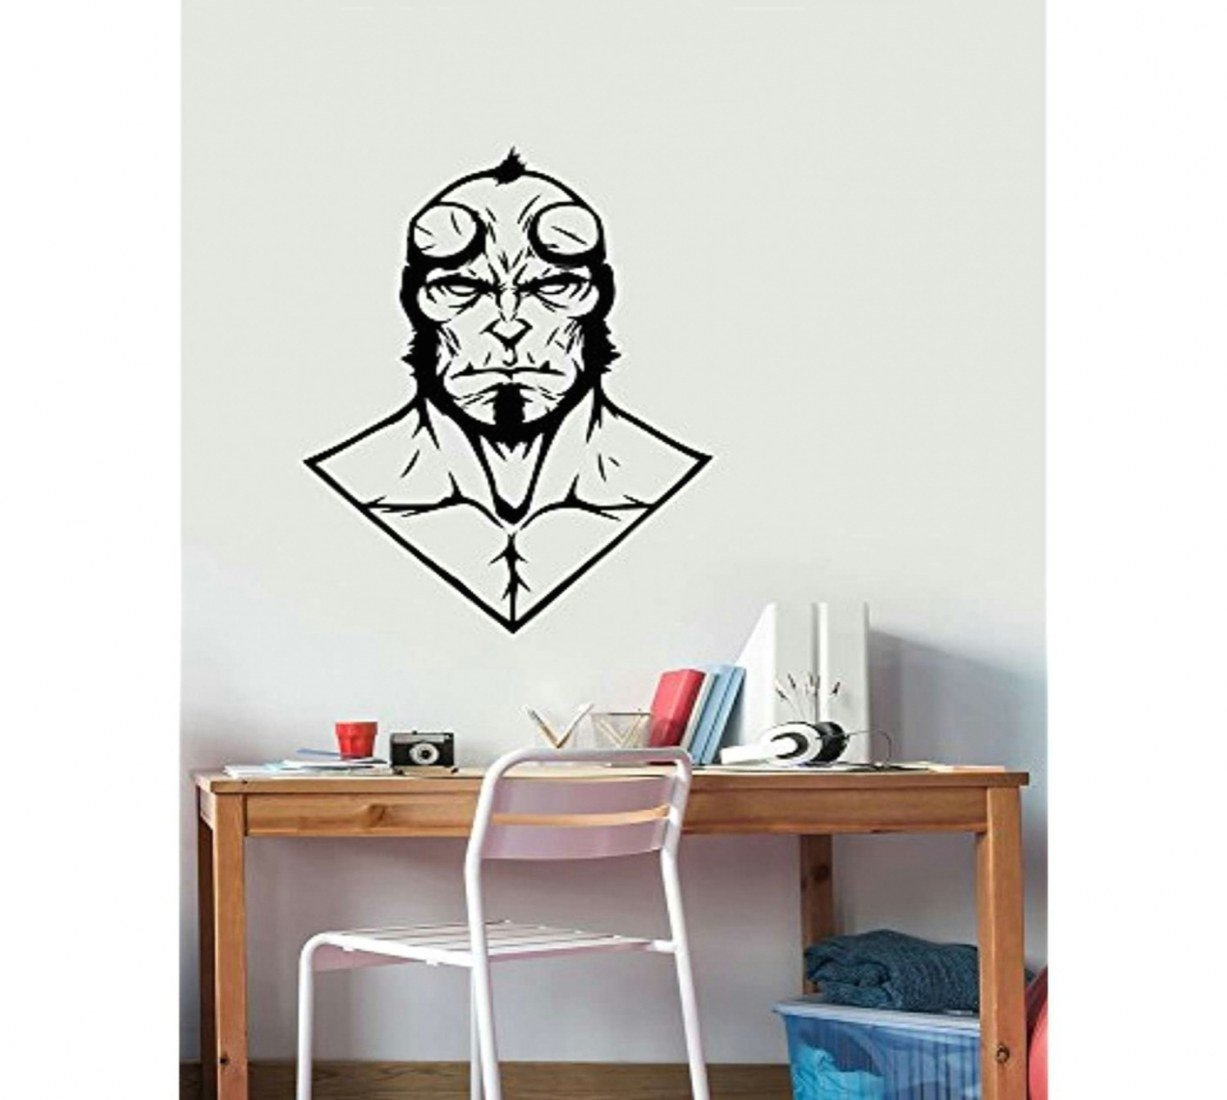 Kids Bedroom Wall Decor Awesome Blue Walls Bedroom Drawing Cartoons House Wall Decals for